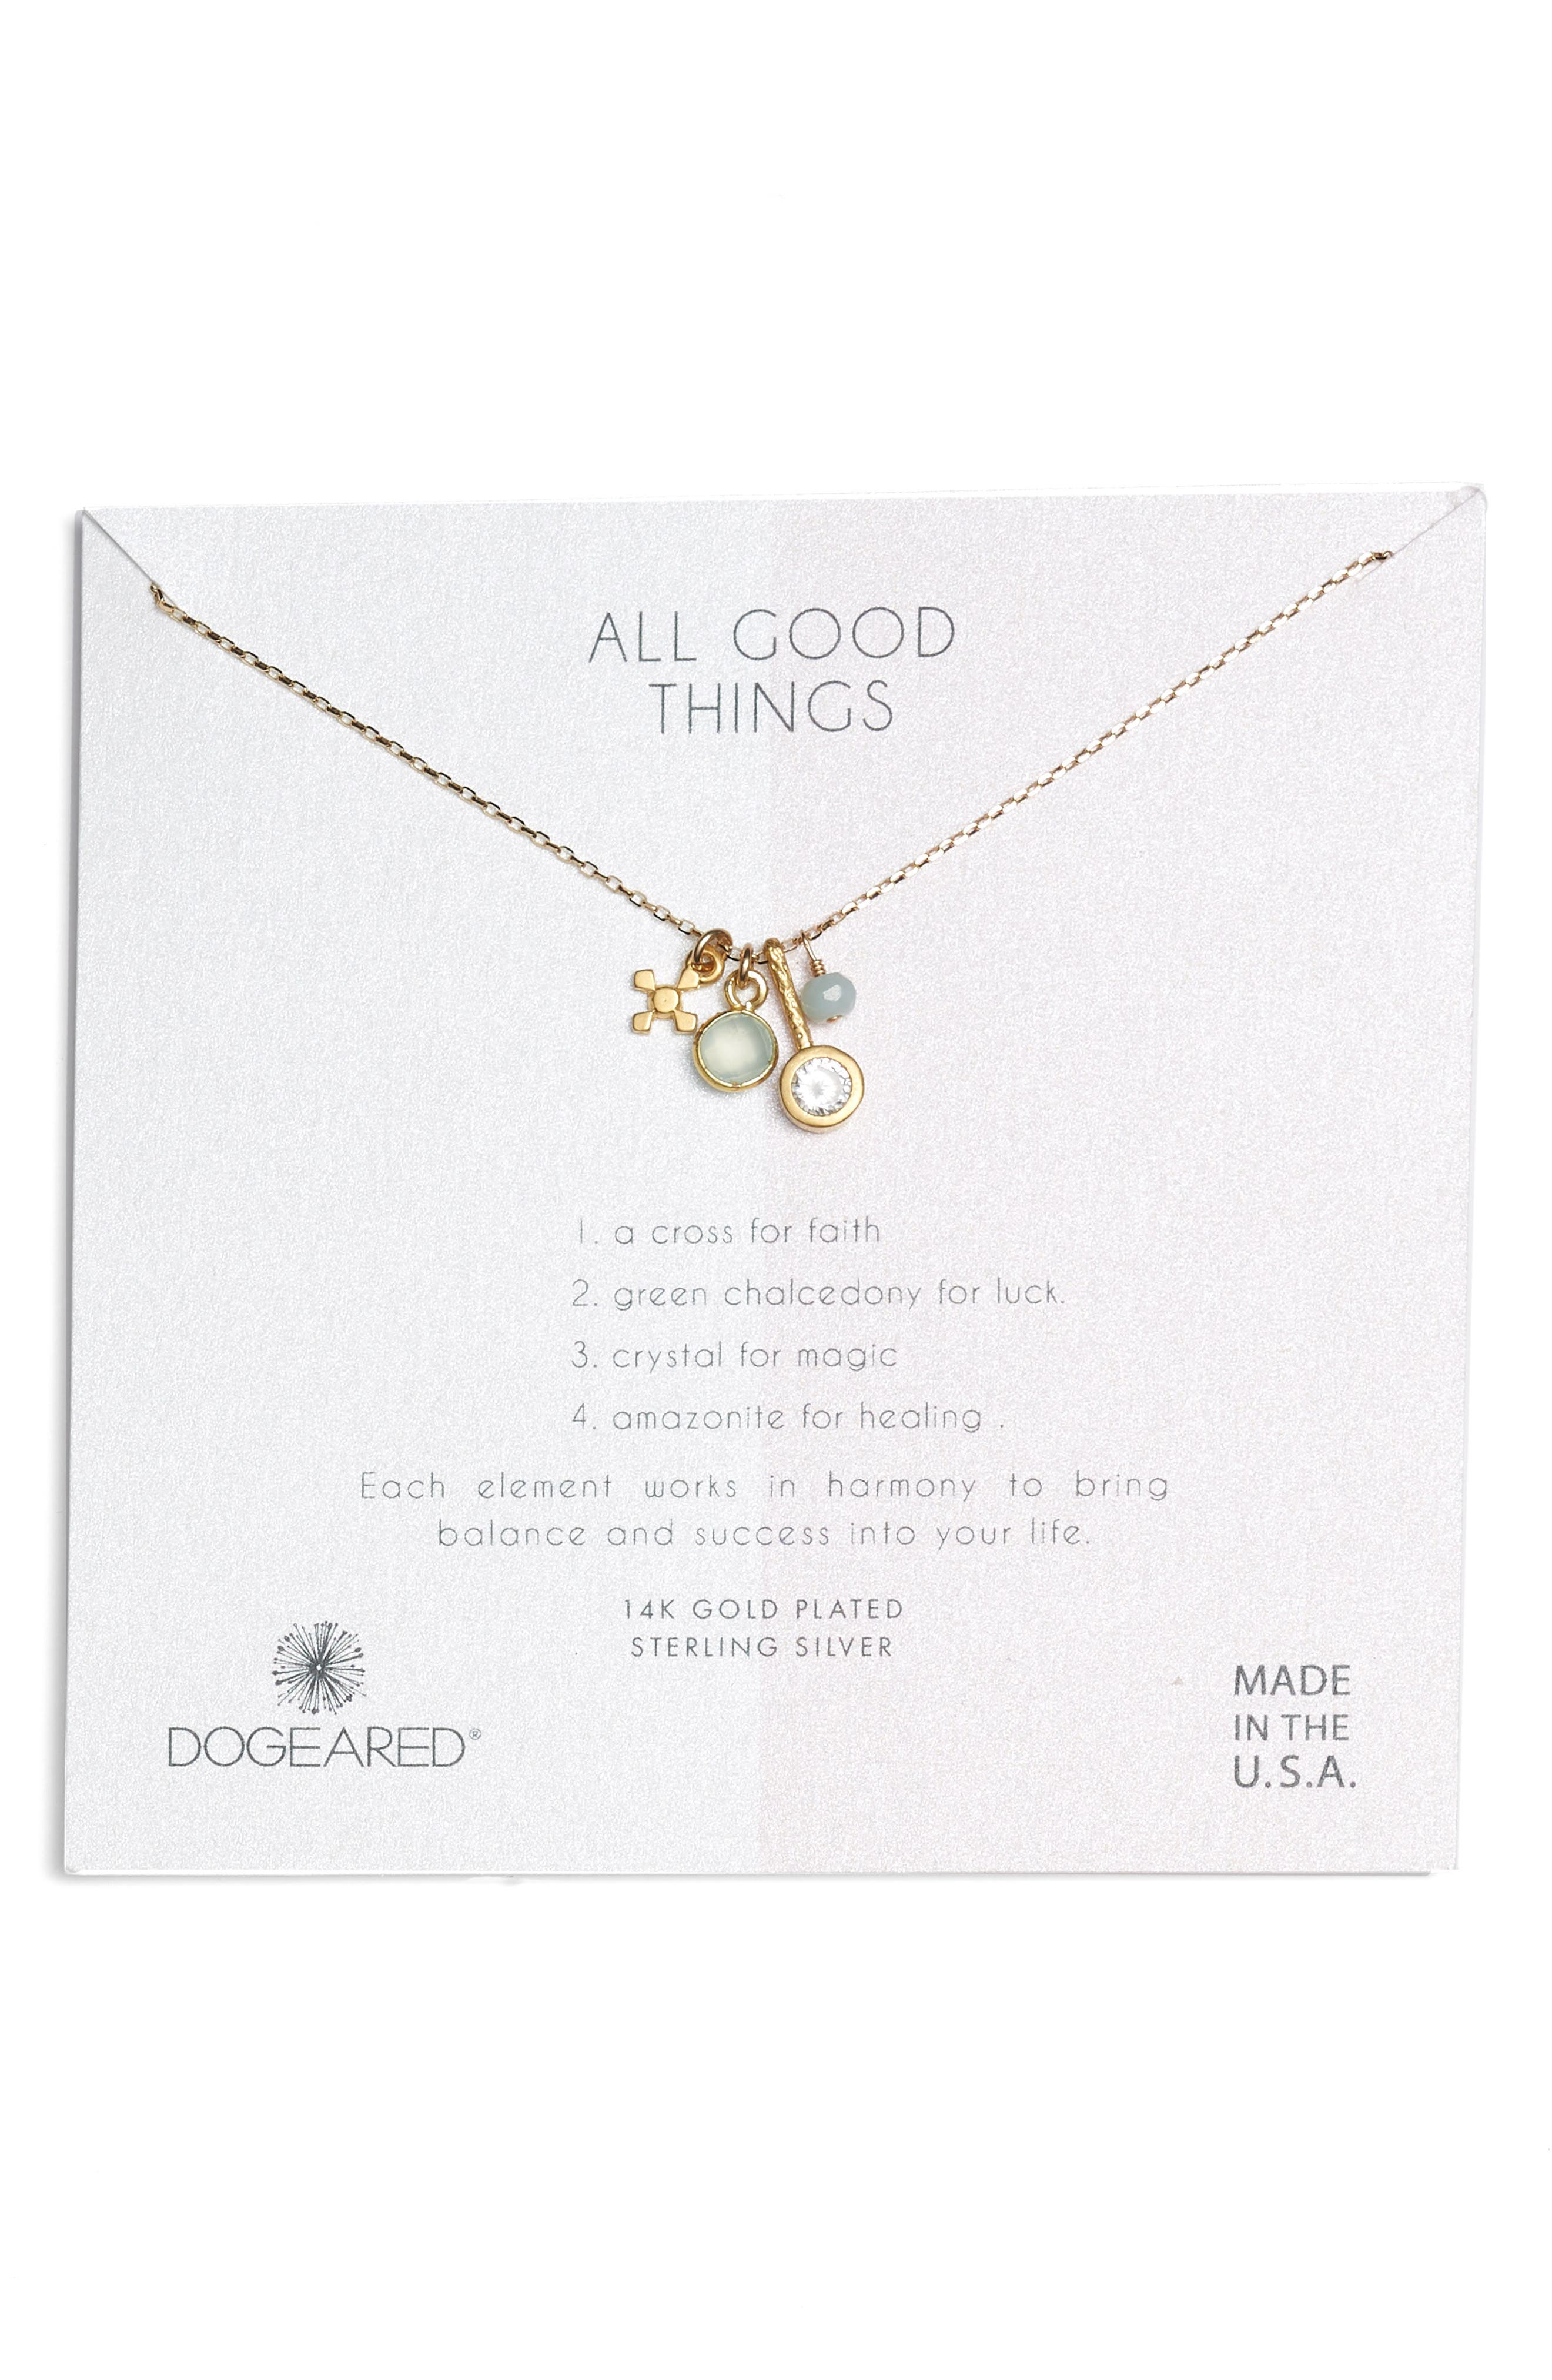 DOGEARED ALL GOOD THINGS GREEN CHALCEDONY PENDANT NECKLACE